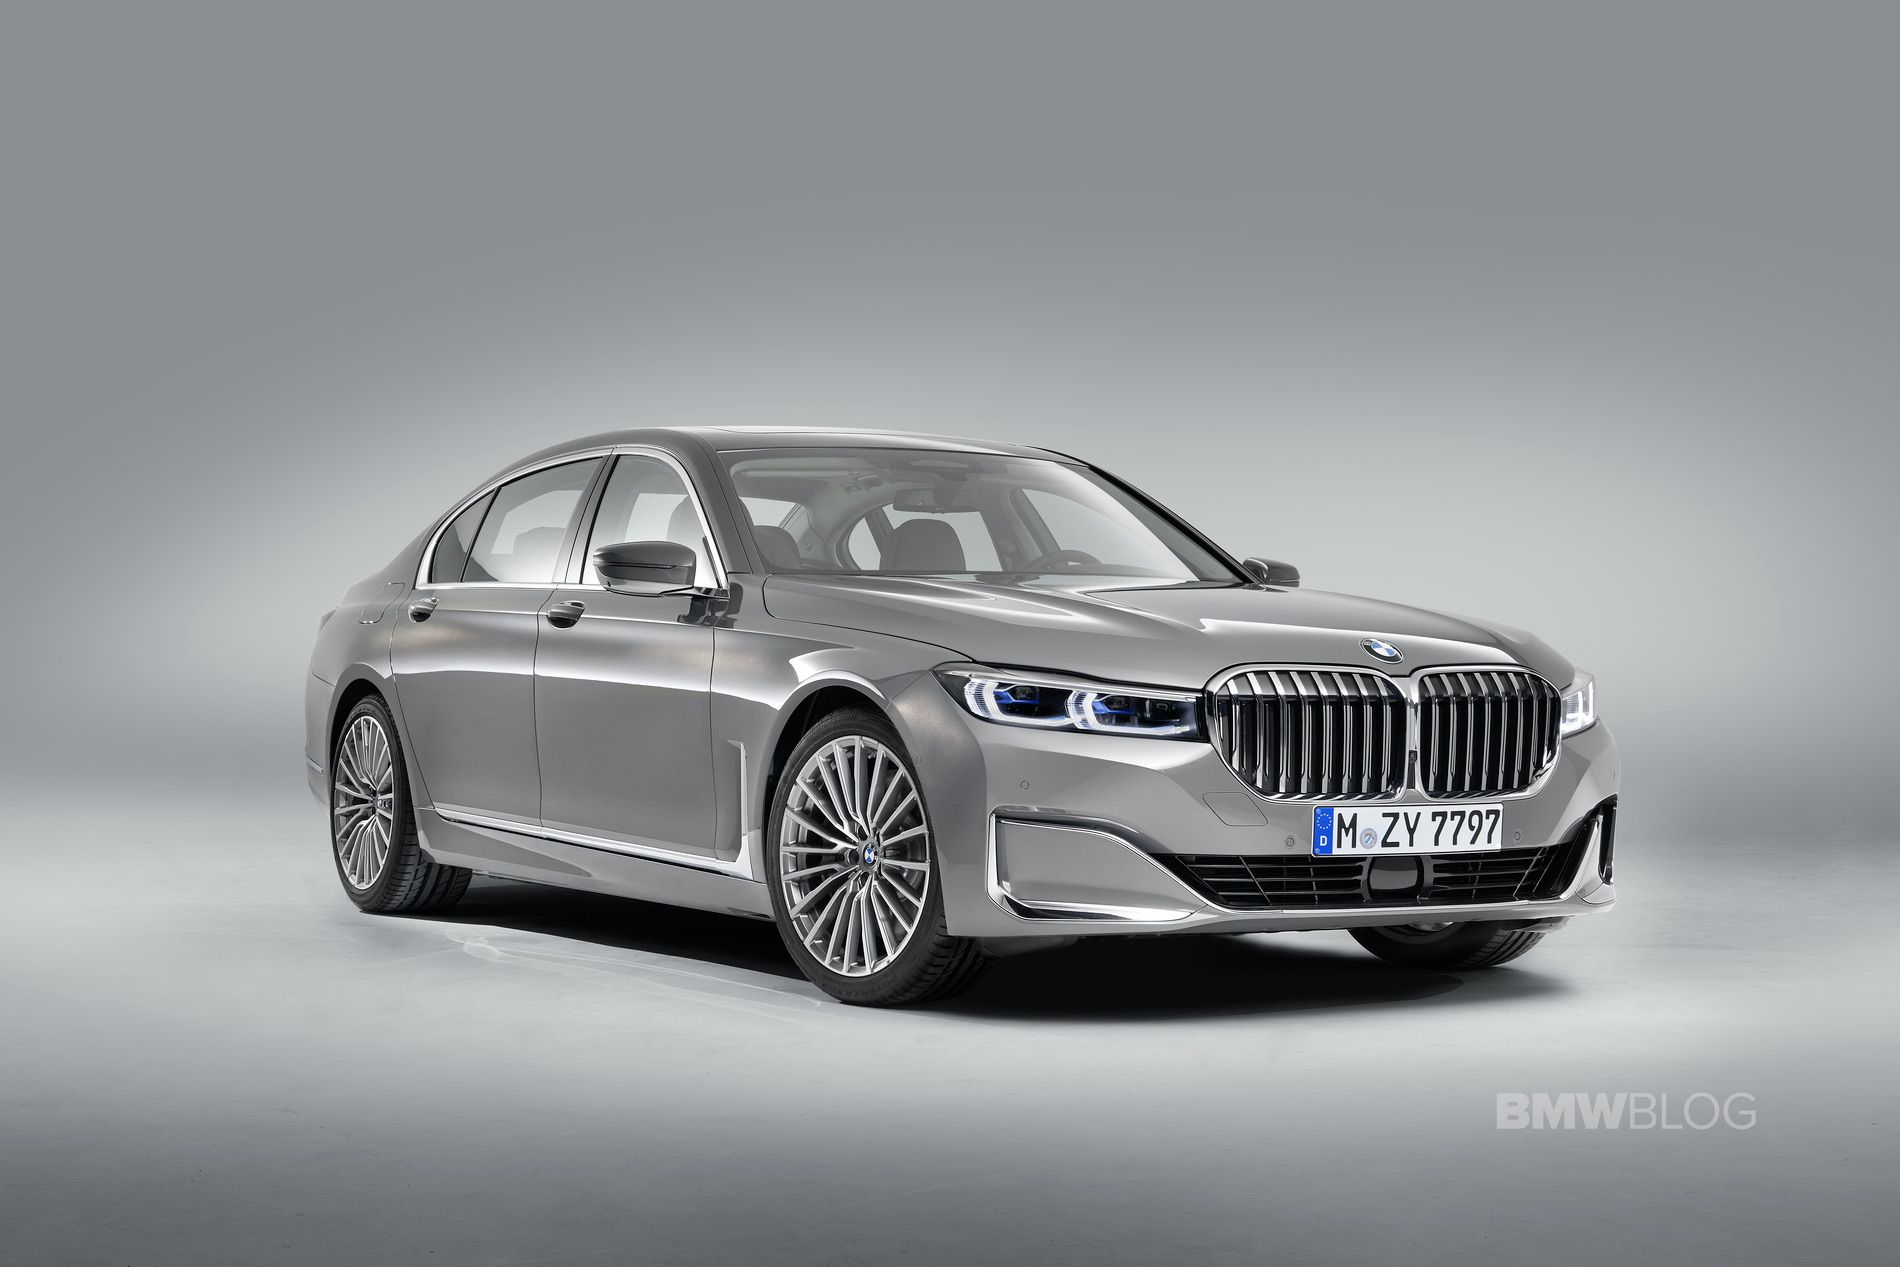 2019 BMW 7 Series Facelift exterior 01